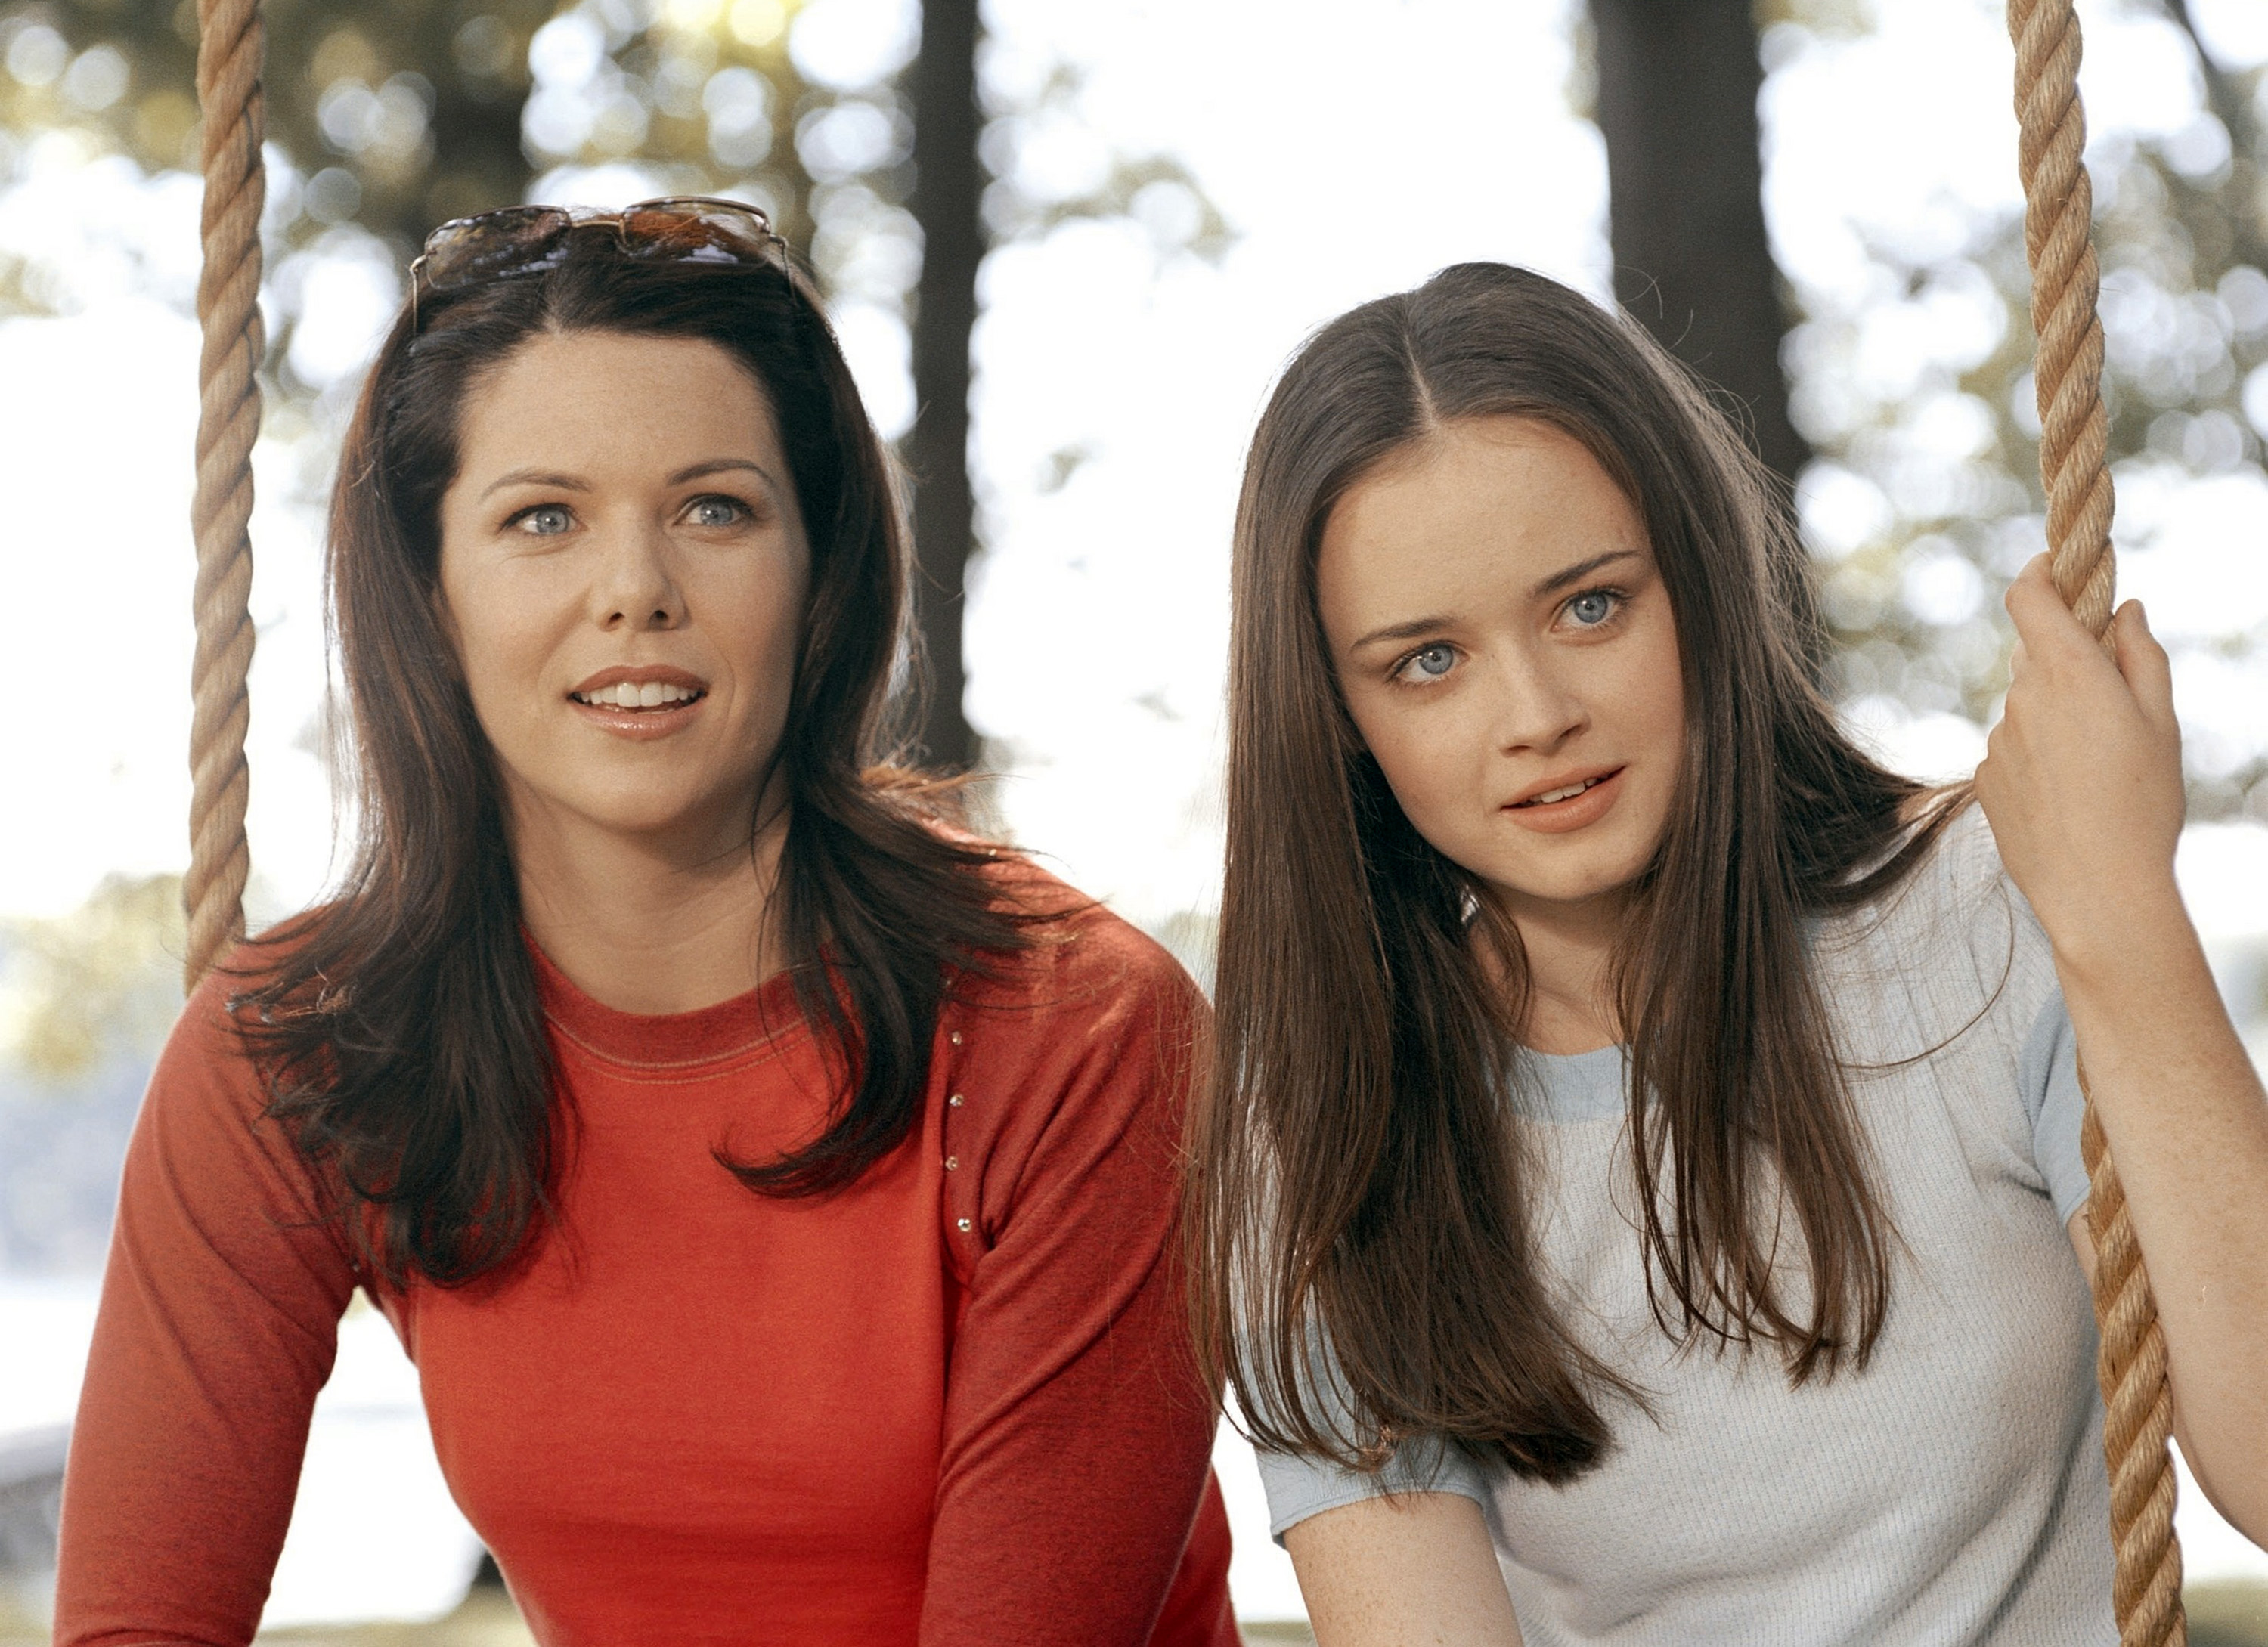 Emo Girl Wallpaper 2014 Gilmore Girls 2014 Gallery 04 Lauren Graham As Lorelai And